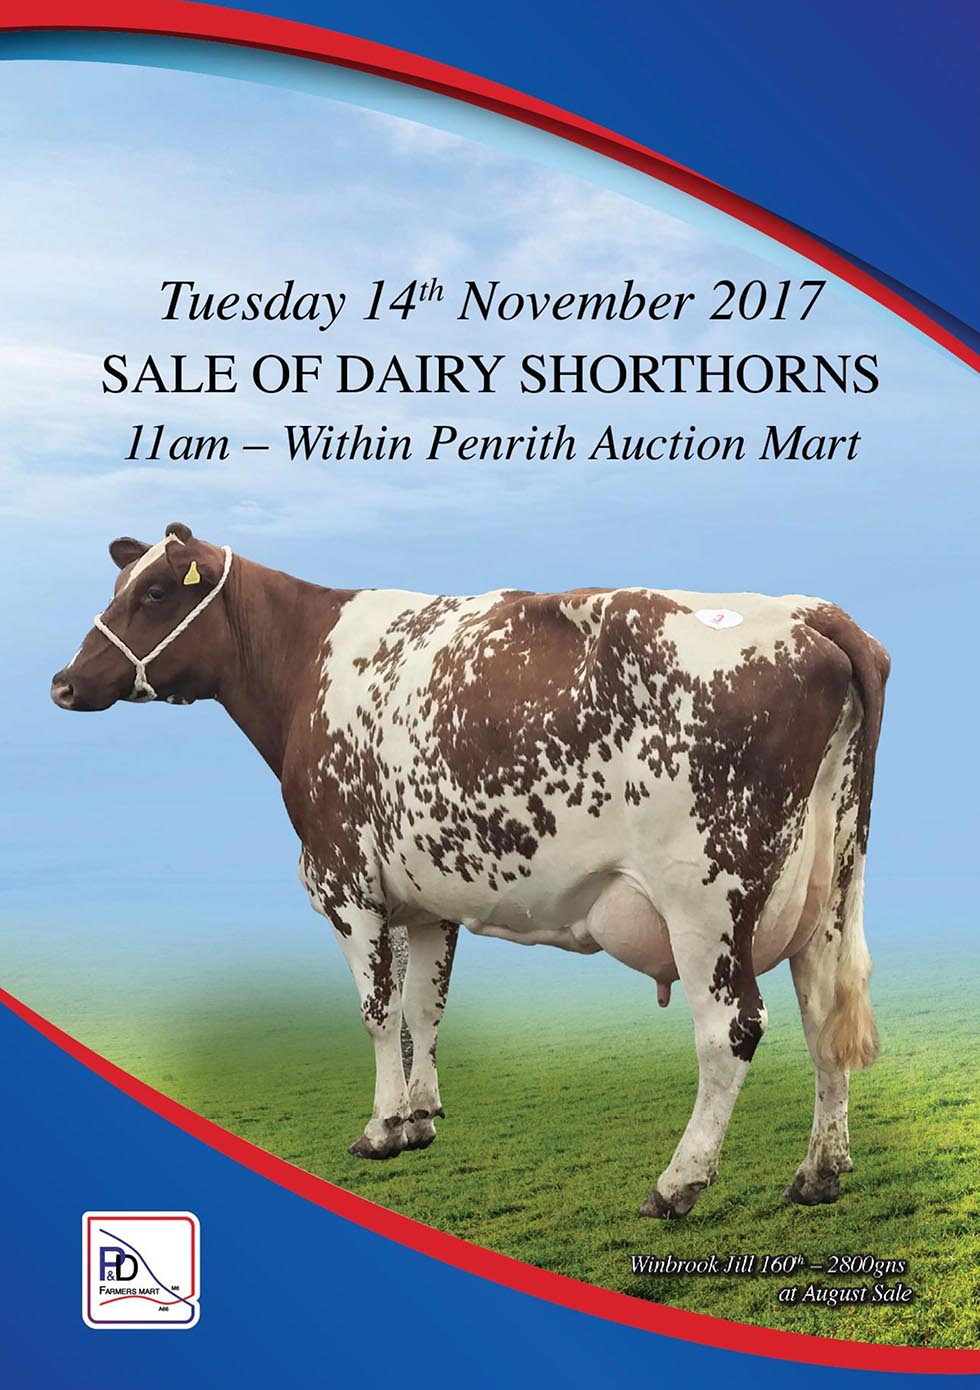 Sale of Dairy Shorthorns